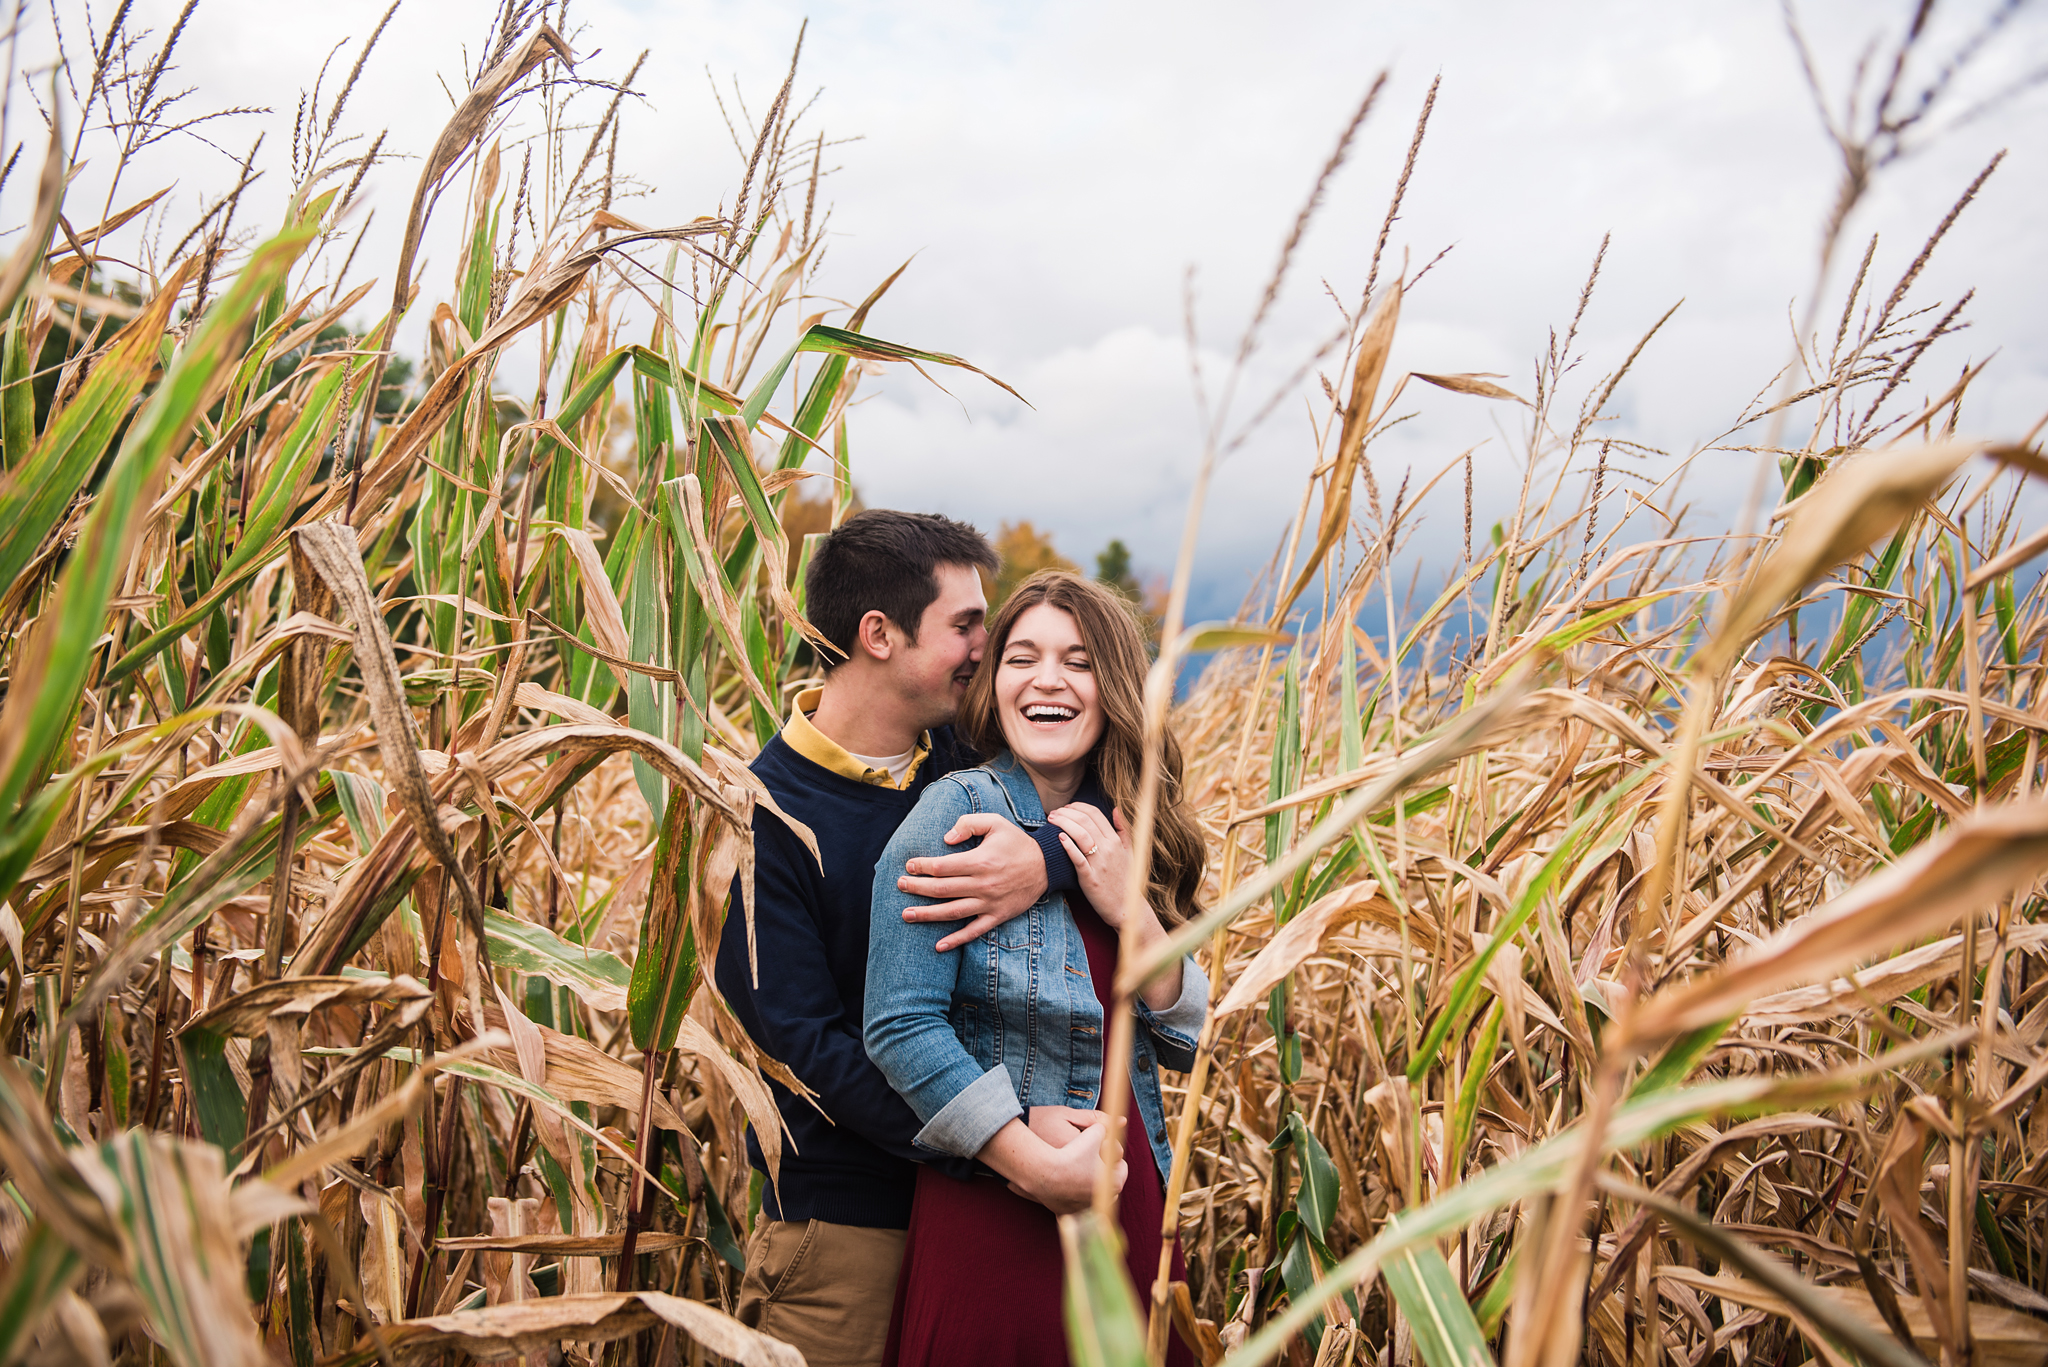 Becker_Farms_Buffalo_Engagement_Session_JILL_STUDIO_Rochester_NY_Photographer_DSC_4728.jpg